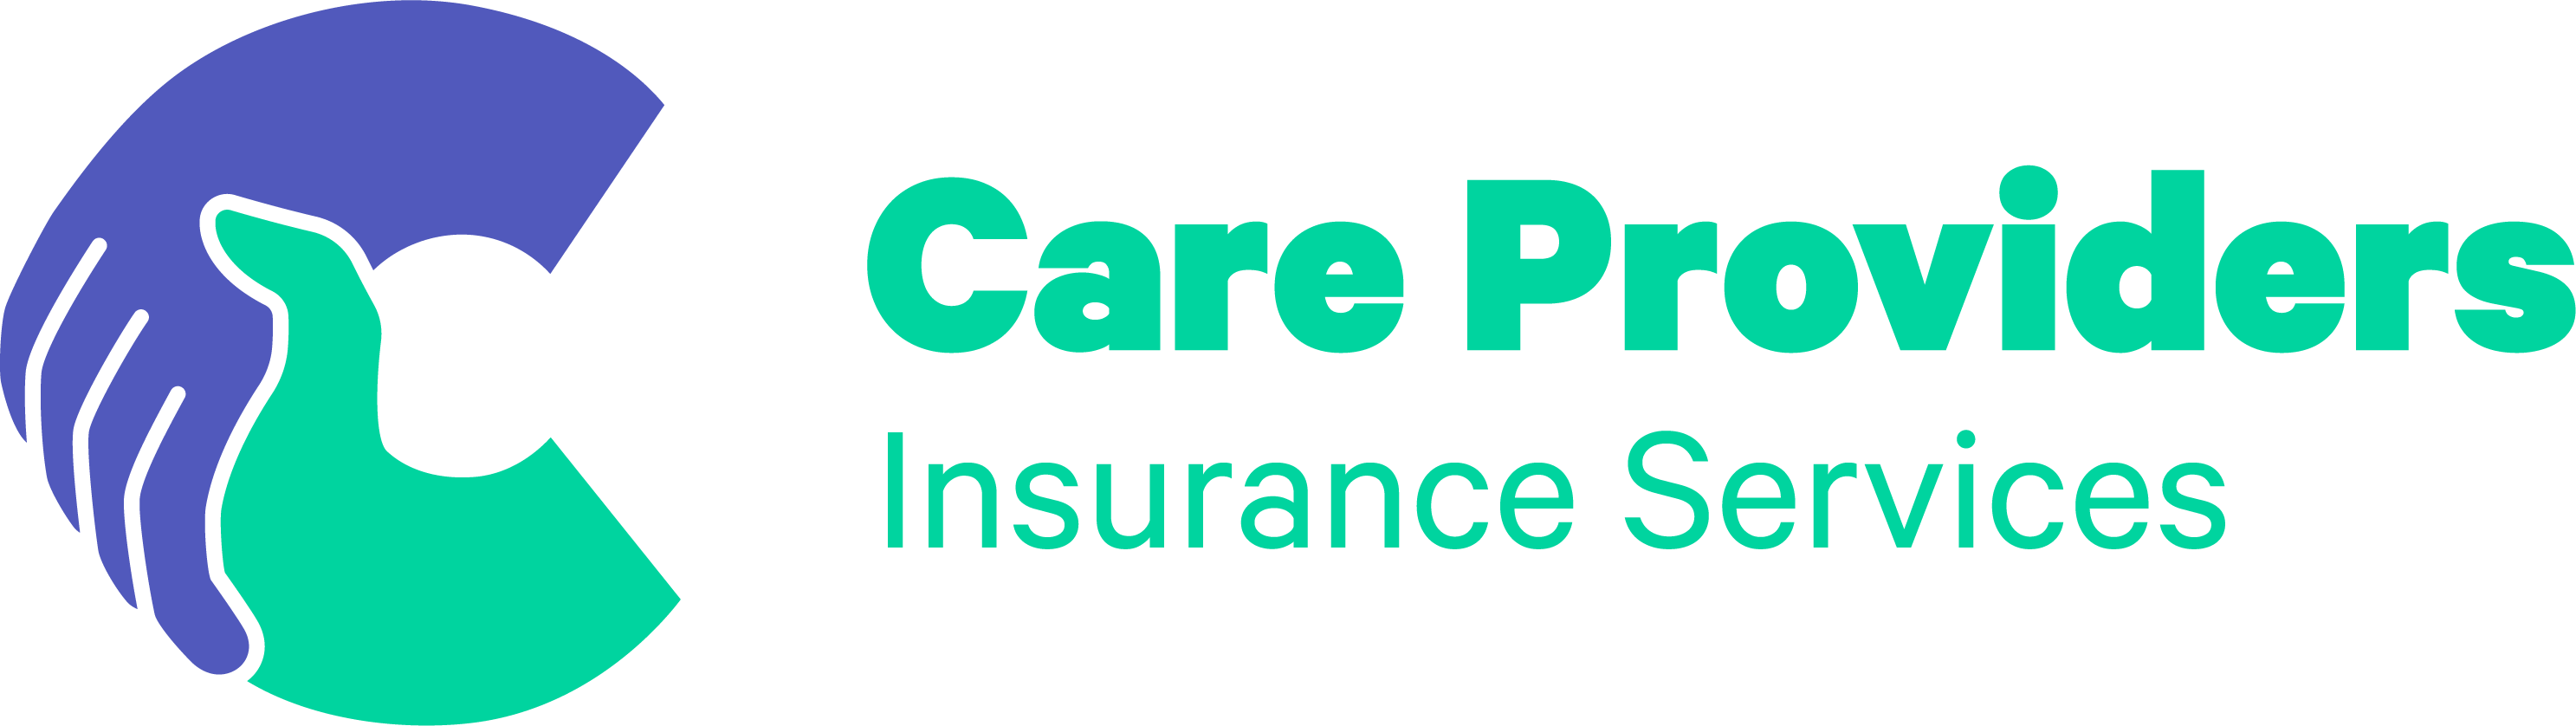 Care providers insurance